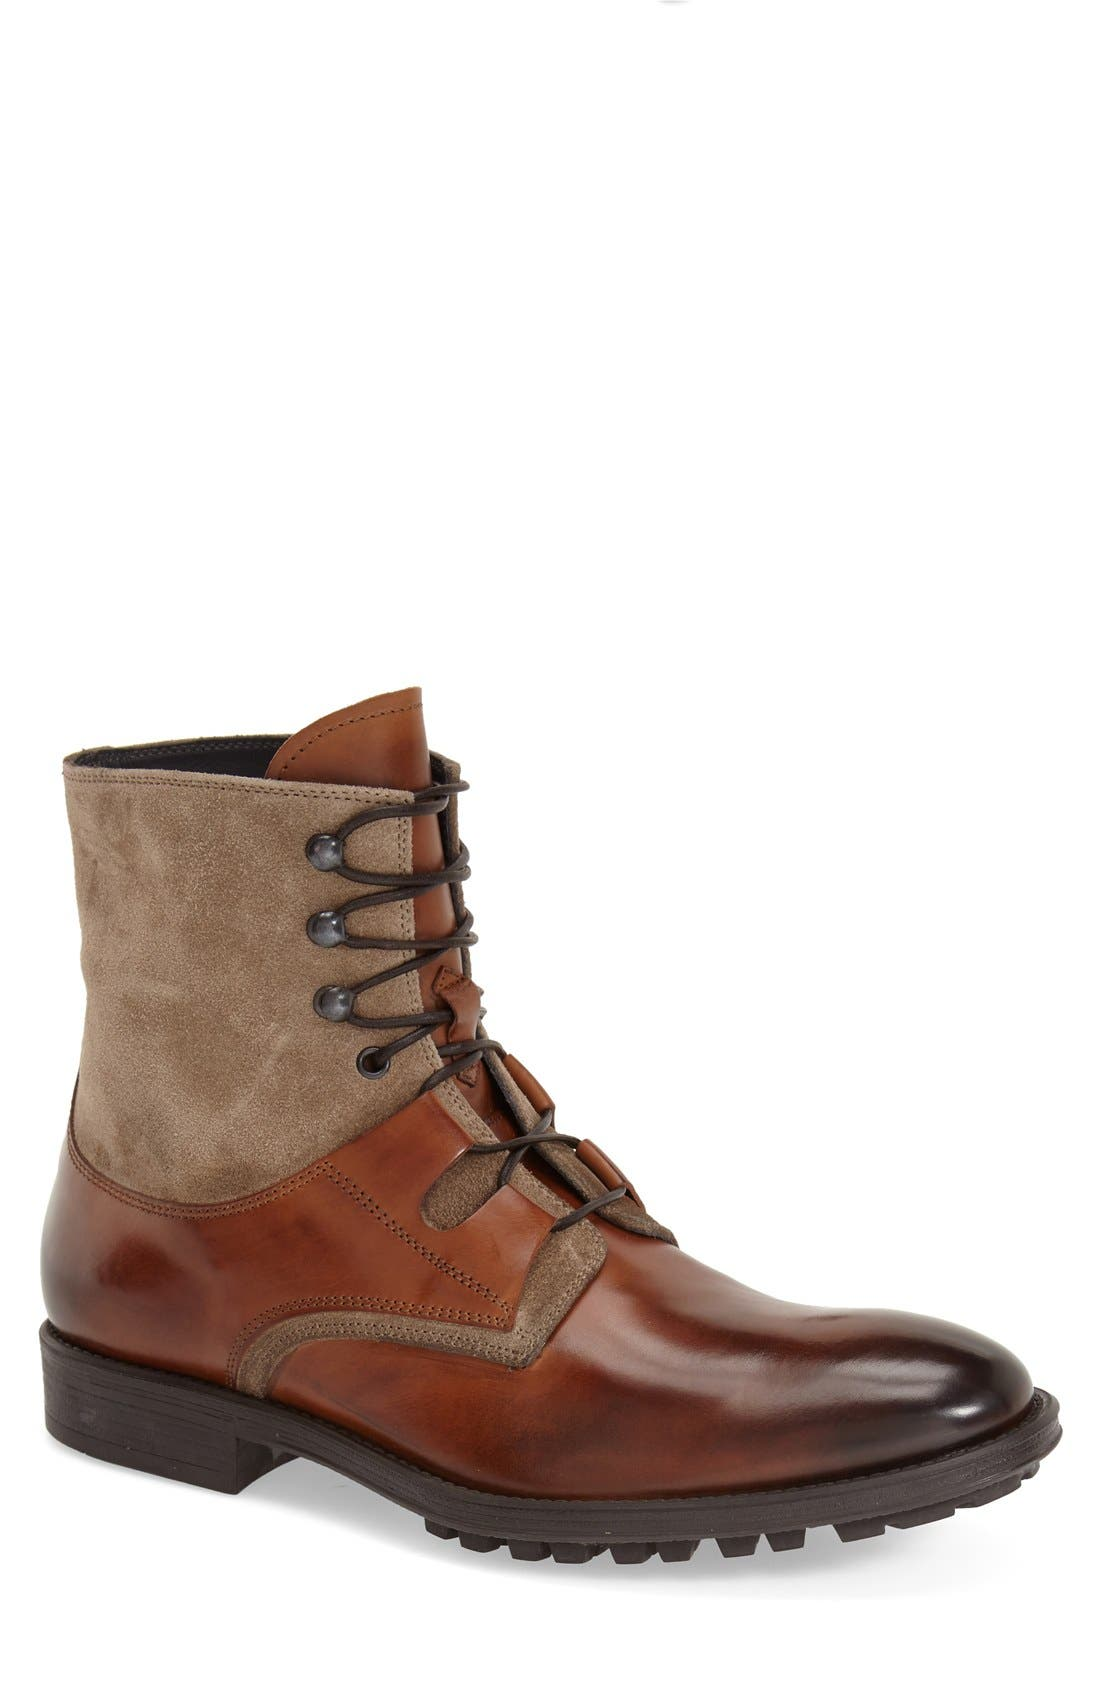 'Blake' Lace-Up Boot, Main, color, 221